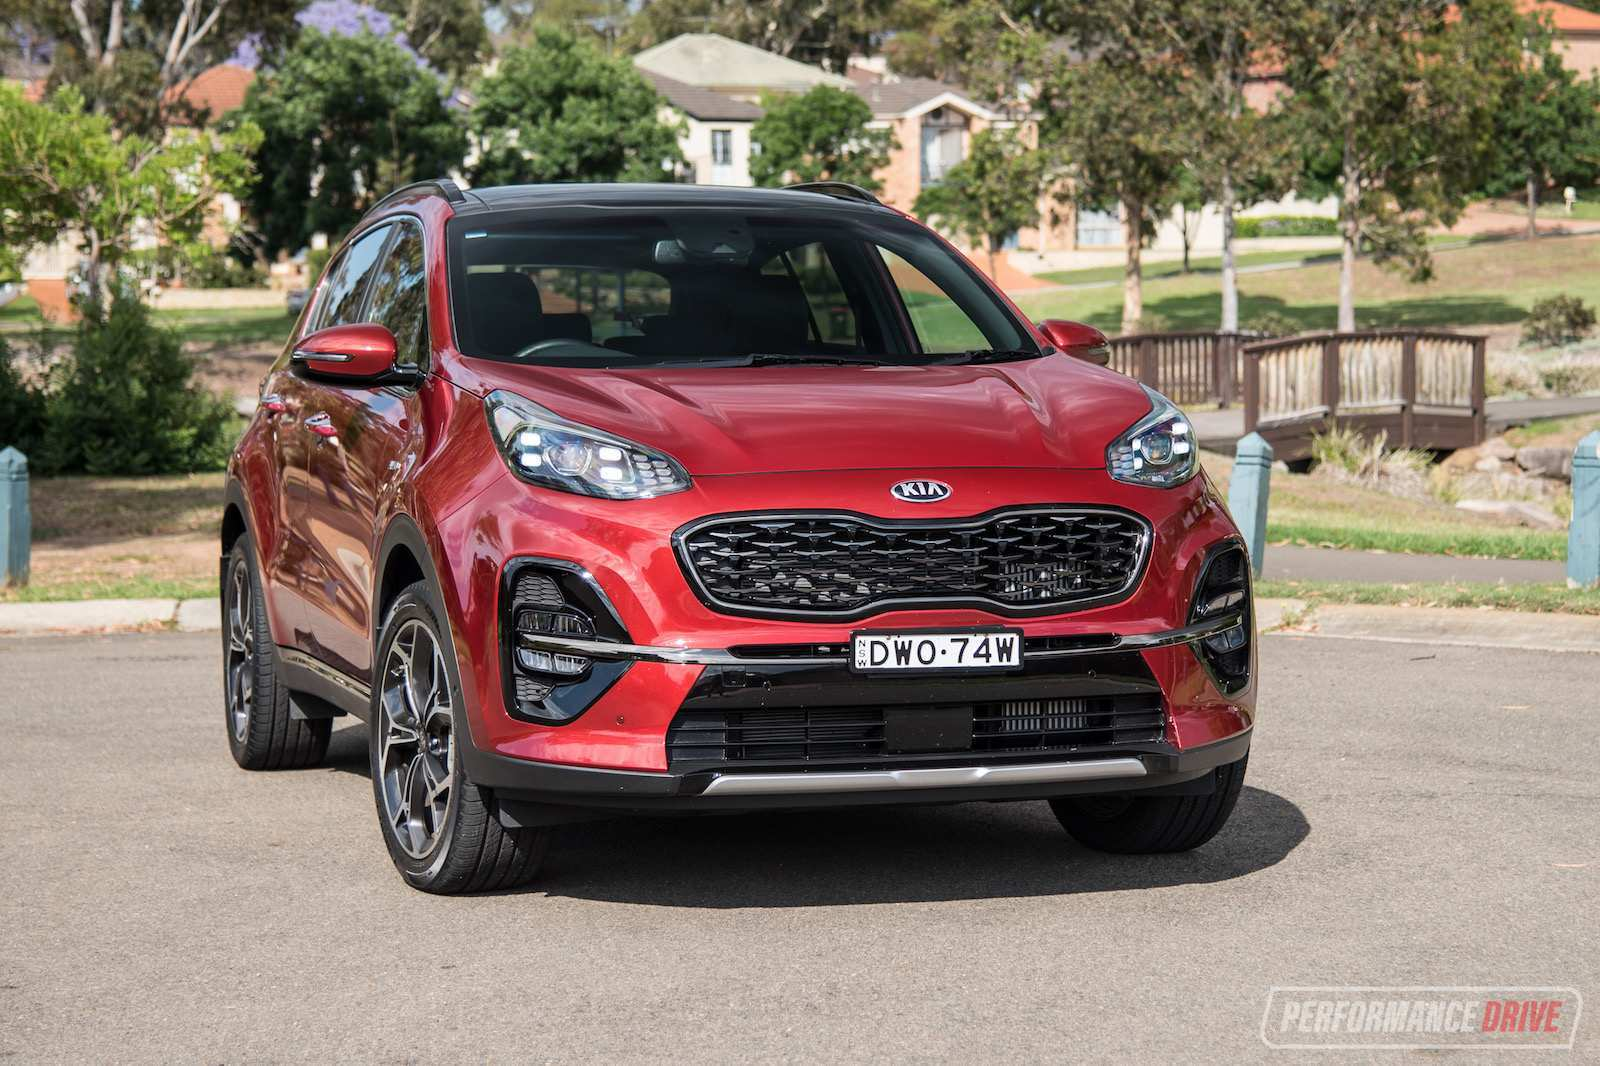 24 All New Kia Sportage Gt Line 2019 Exterior And Interior